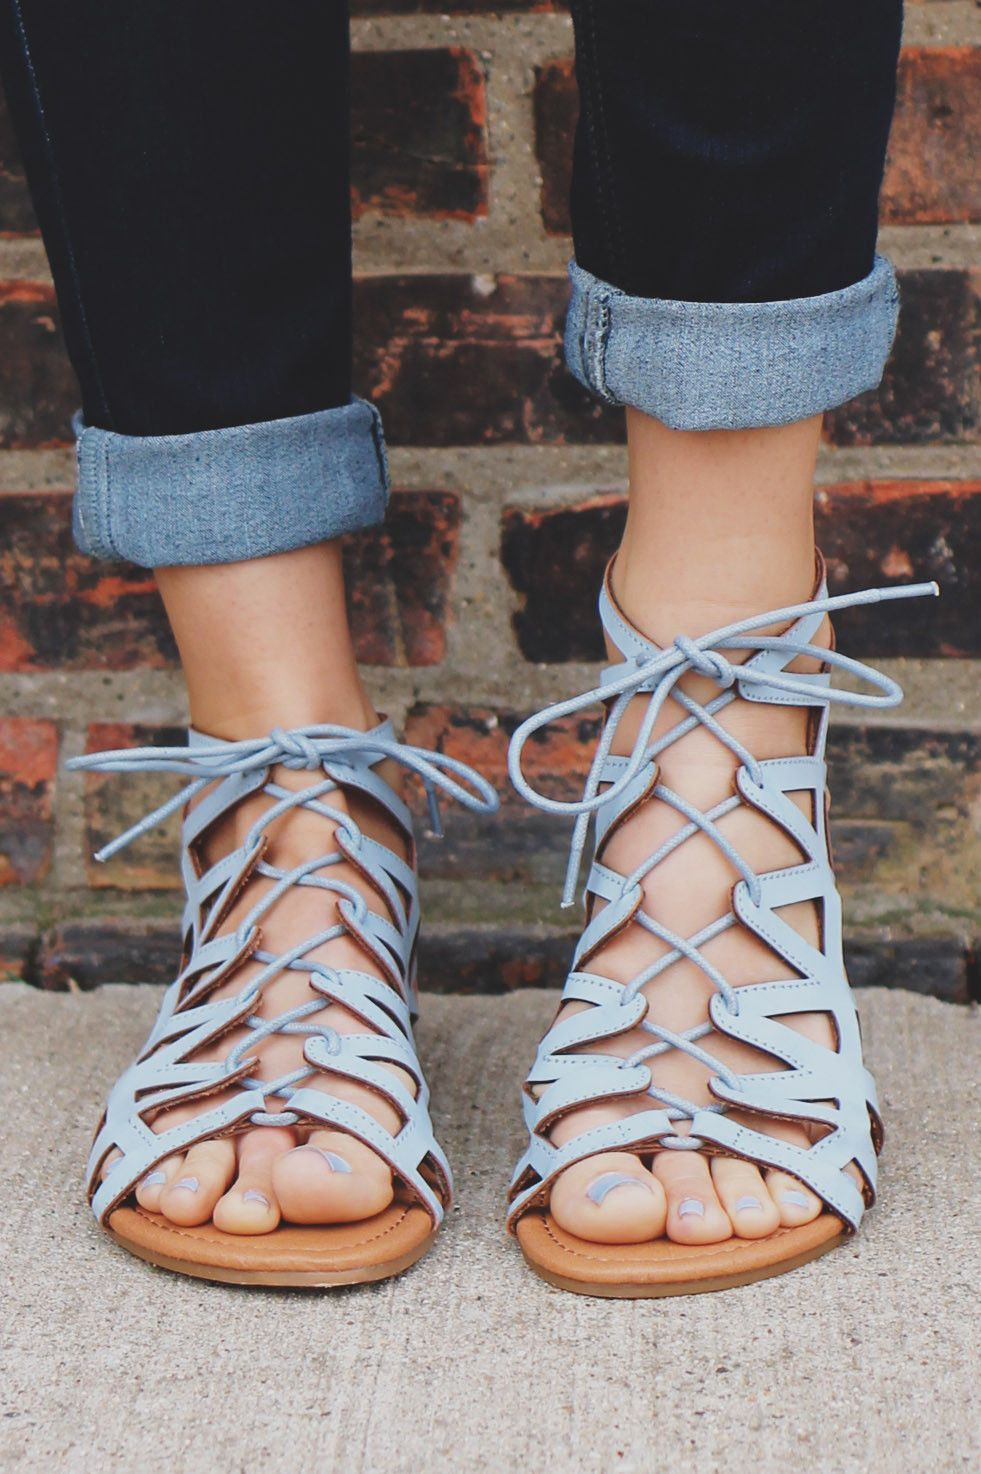 Womens sandals that zip up the back - Baby Blue Lace Up Front Zip Back Strappy Sandal Archer 92 Uoionline Com